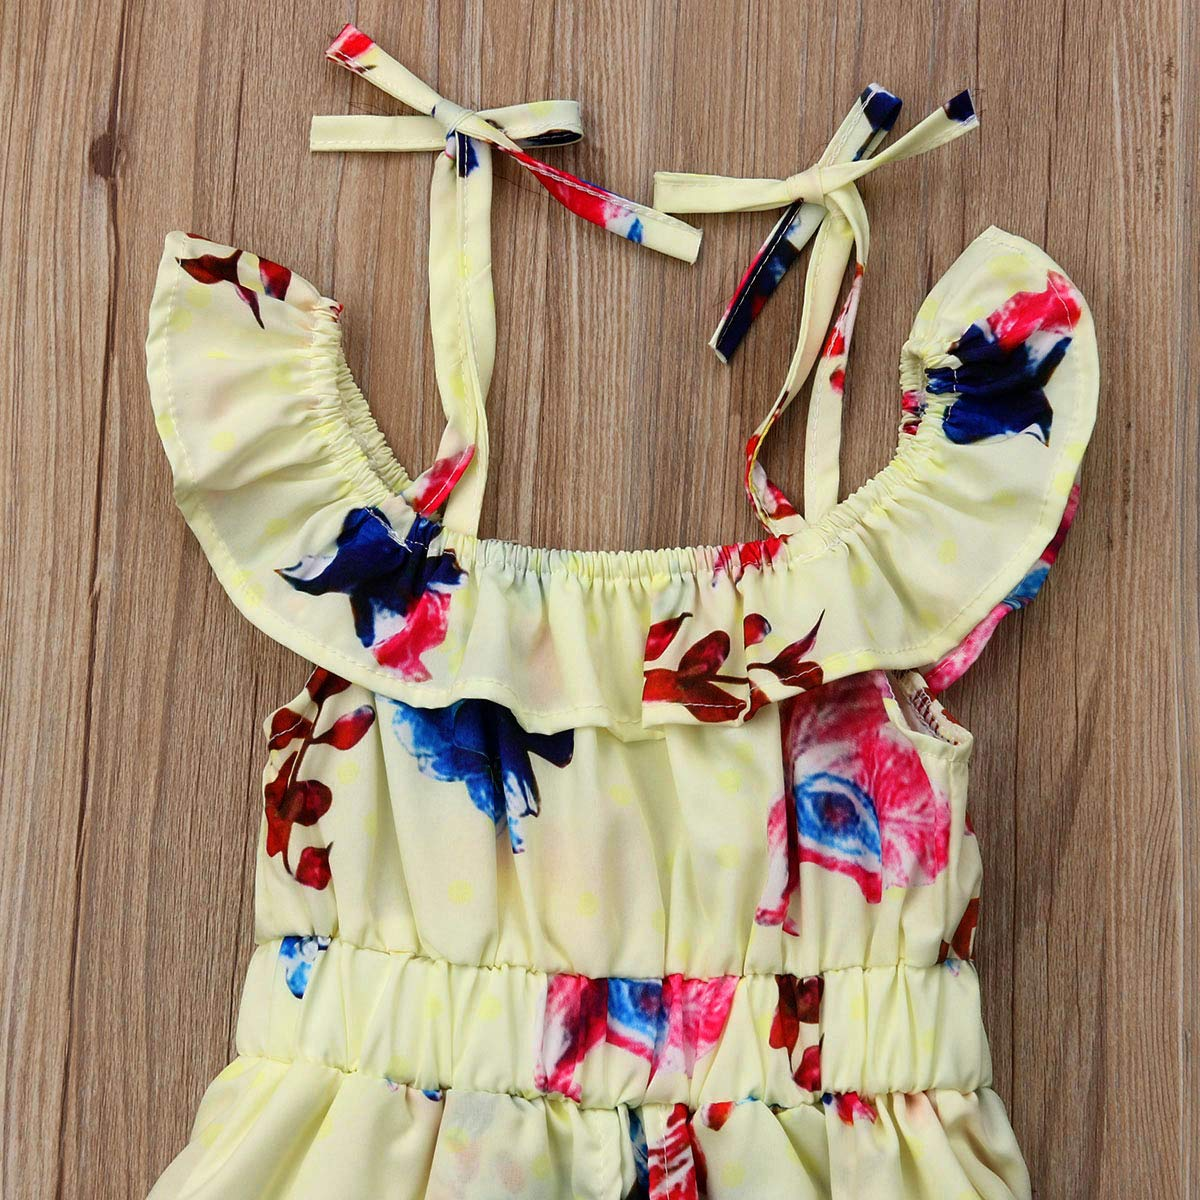 Toddler Baby Girl Dress Tutu Sleeveless Midi Dress Full Skirt with Straps Floral Skirt for 1-6years